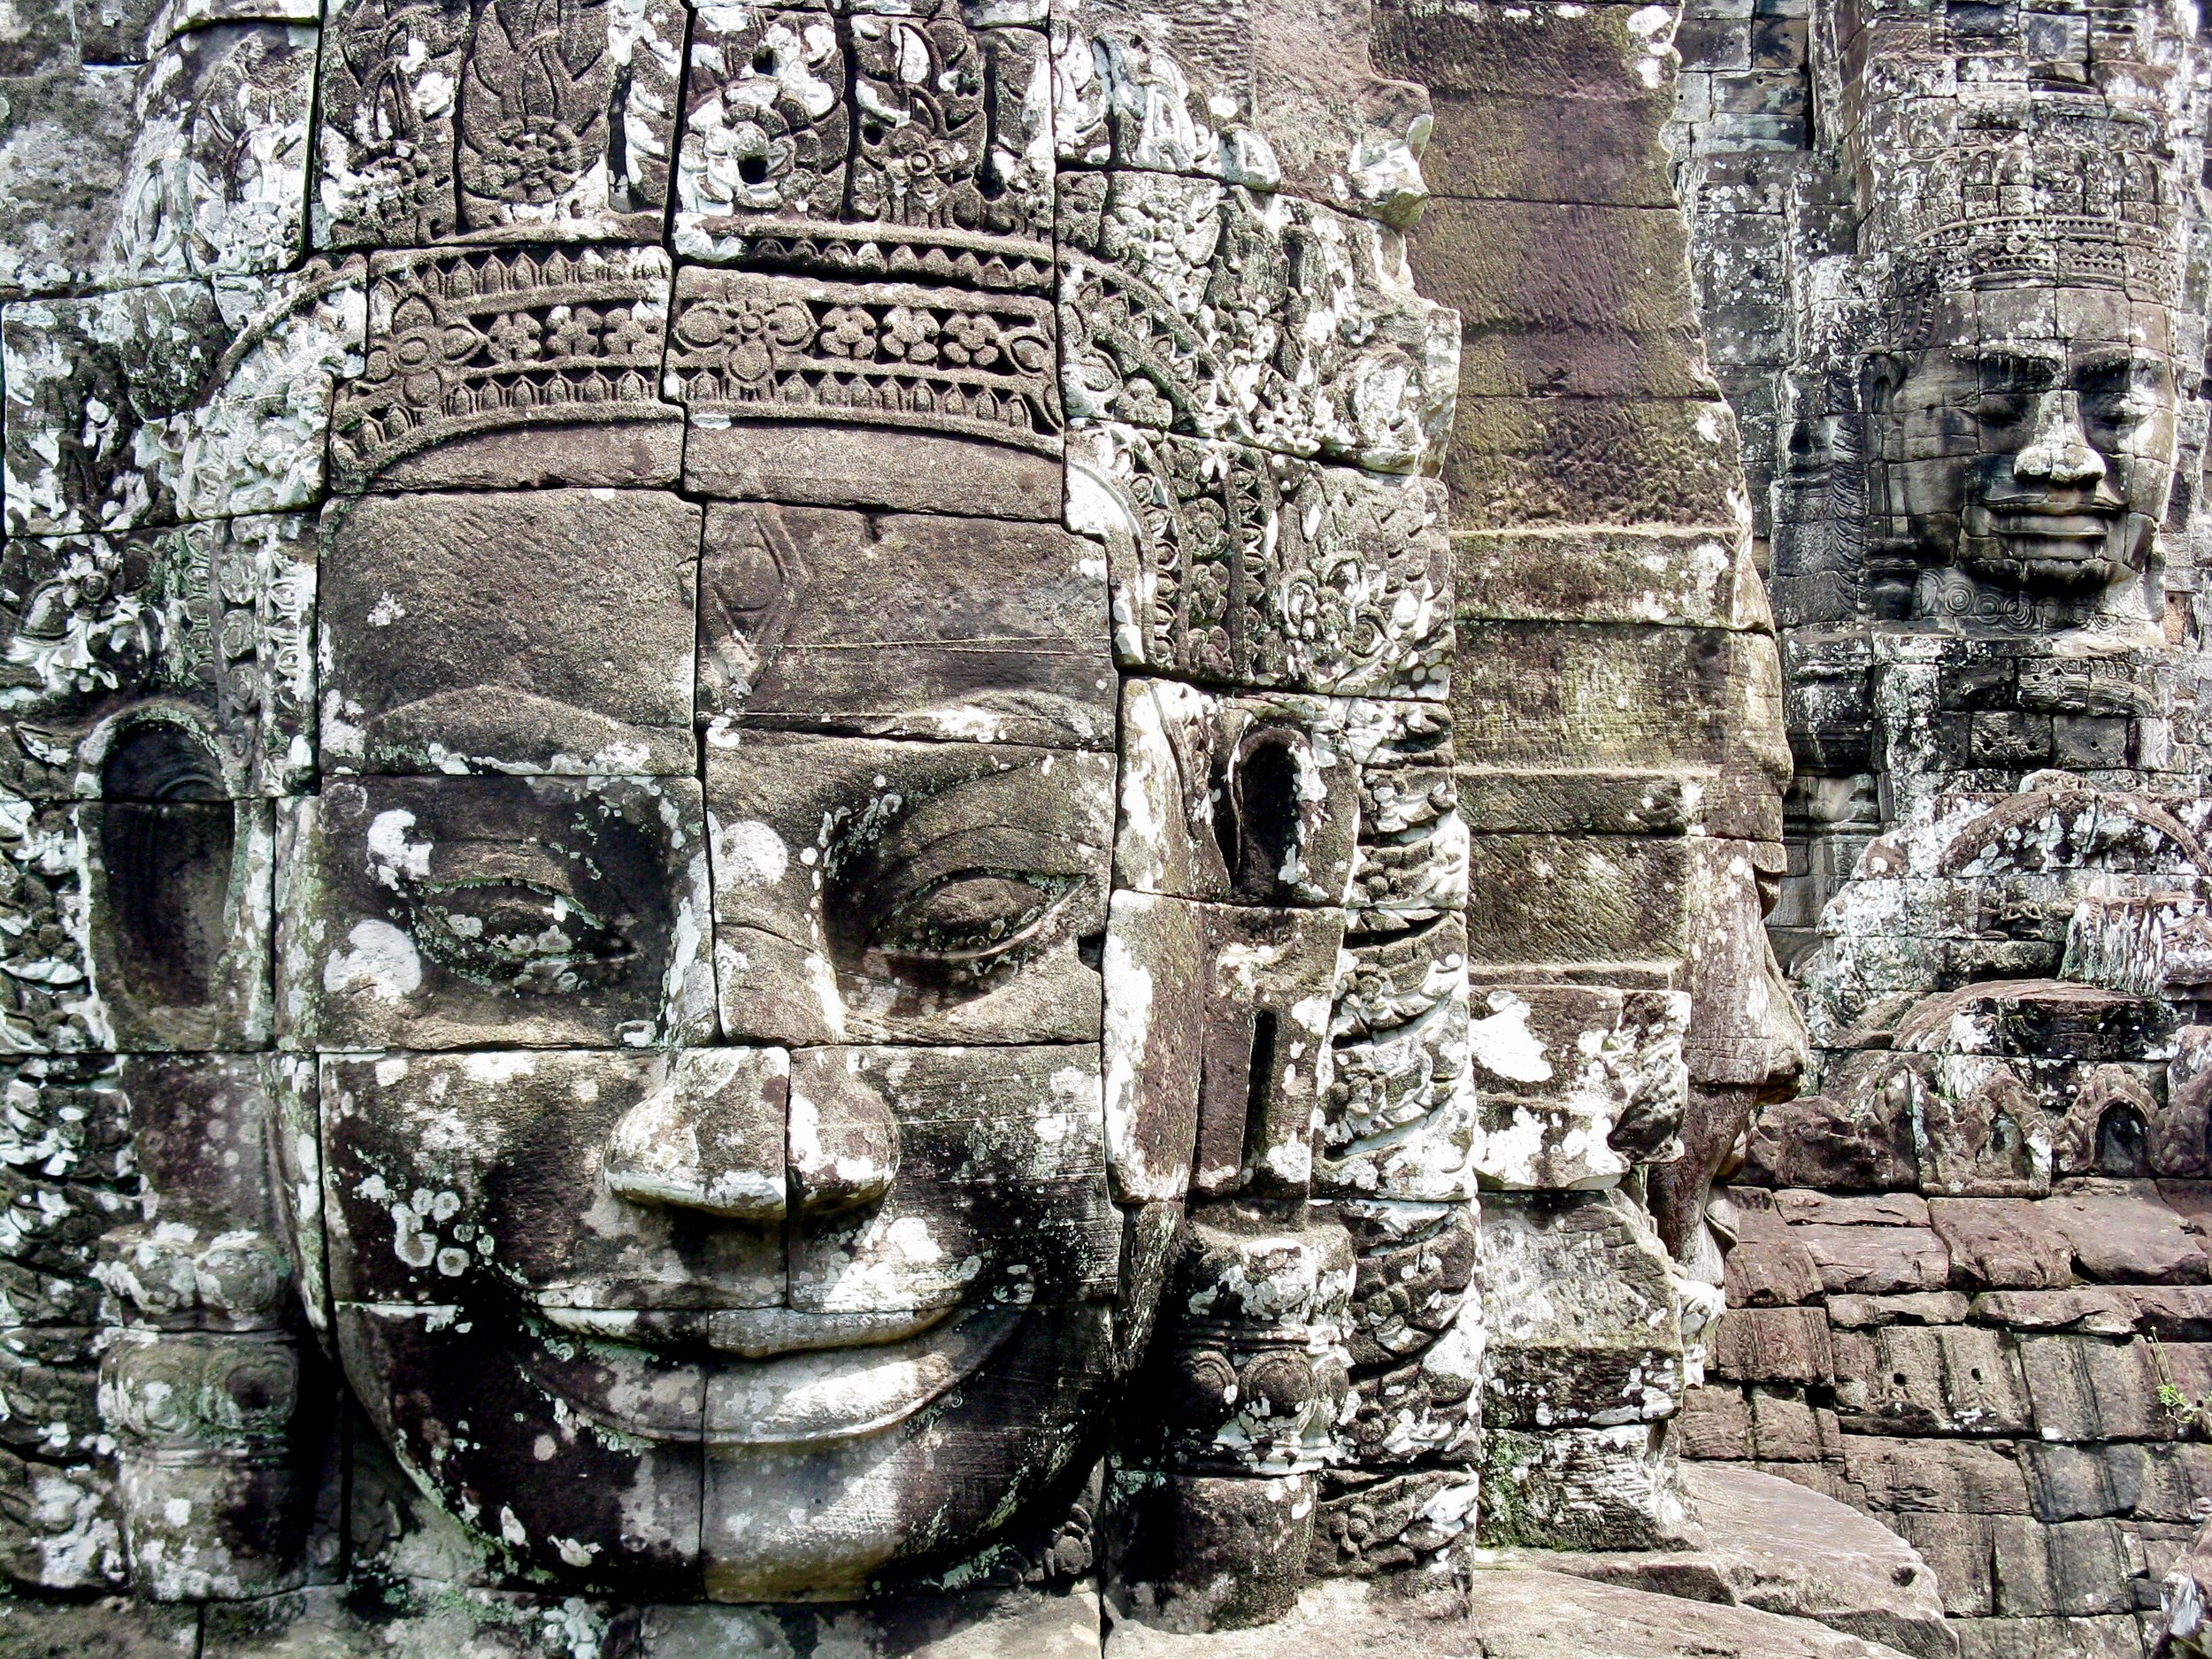 The smiling heads that are found throughout the Bayon Temple complex most likely depict the king — not the Buddha as many assume